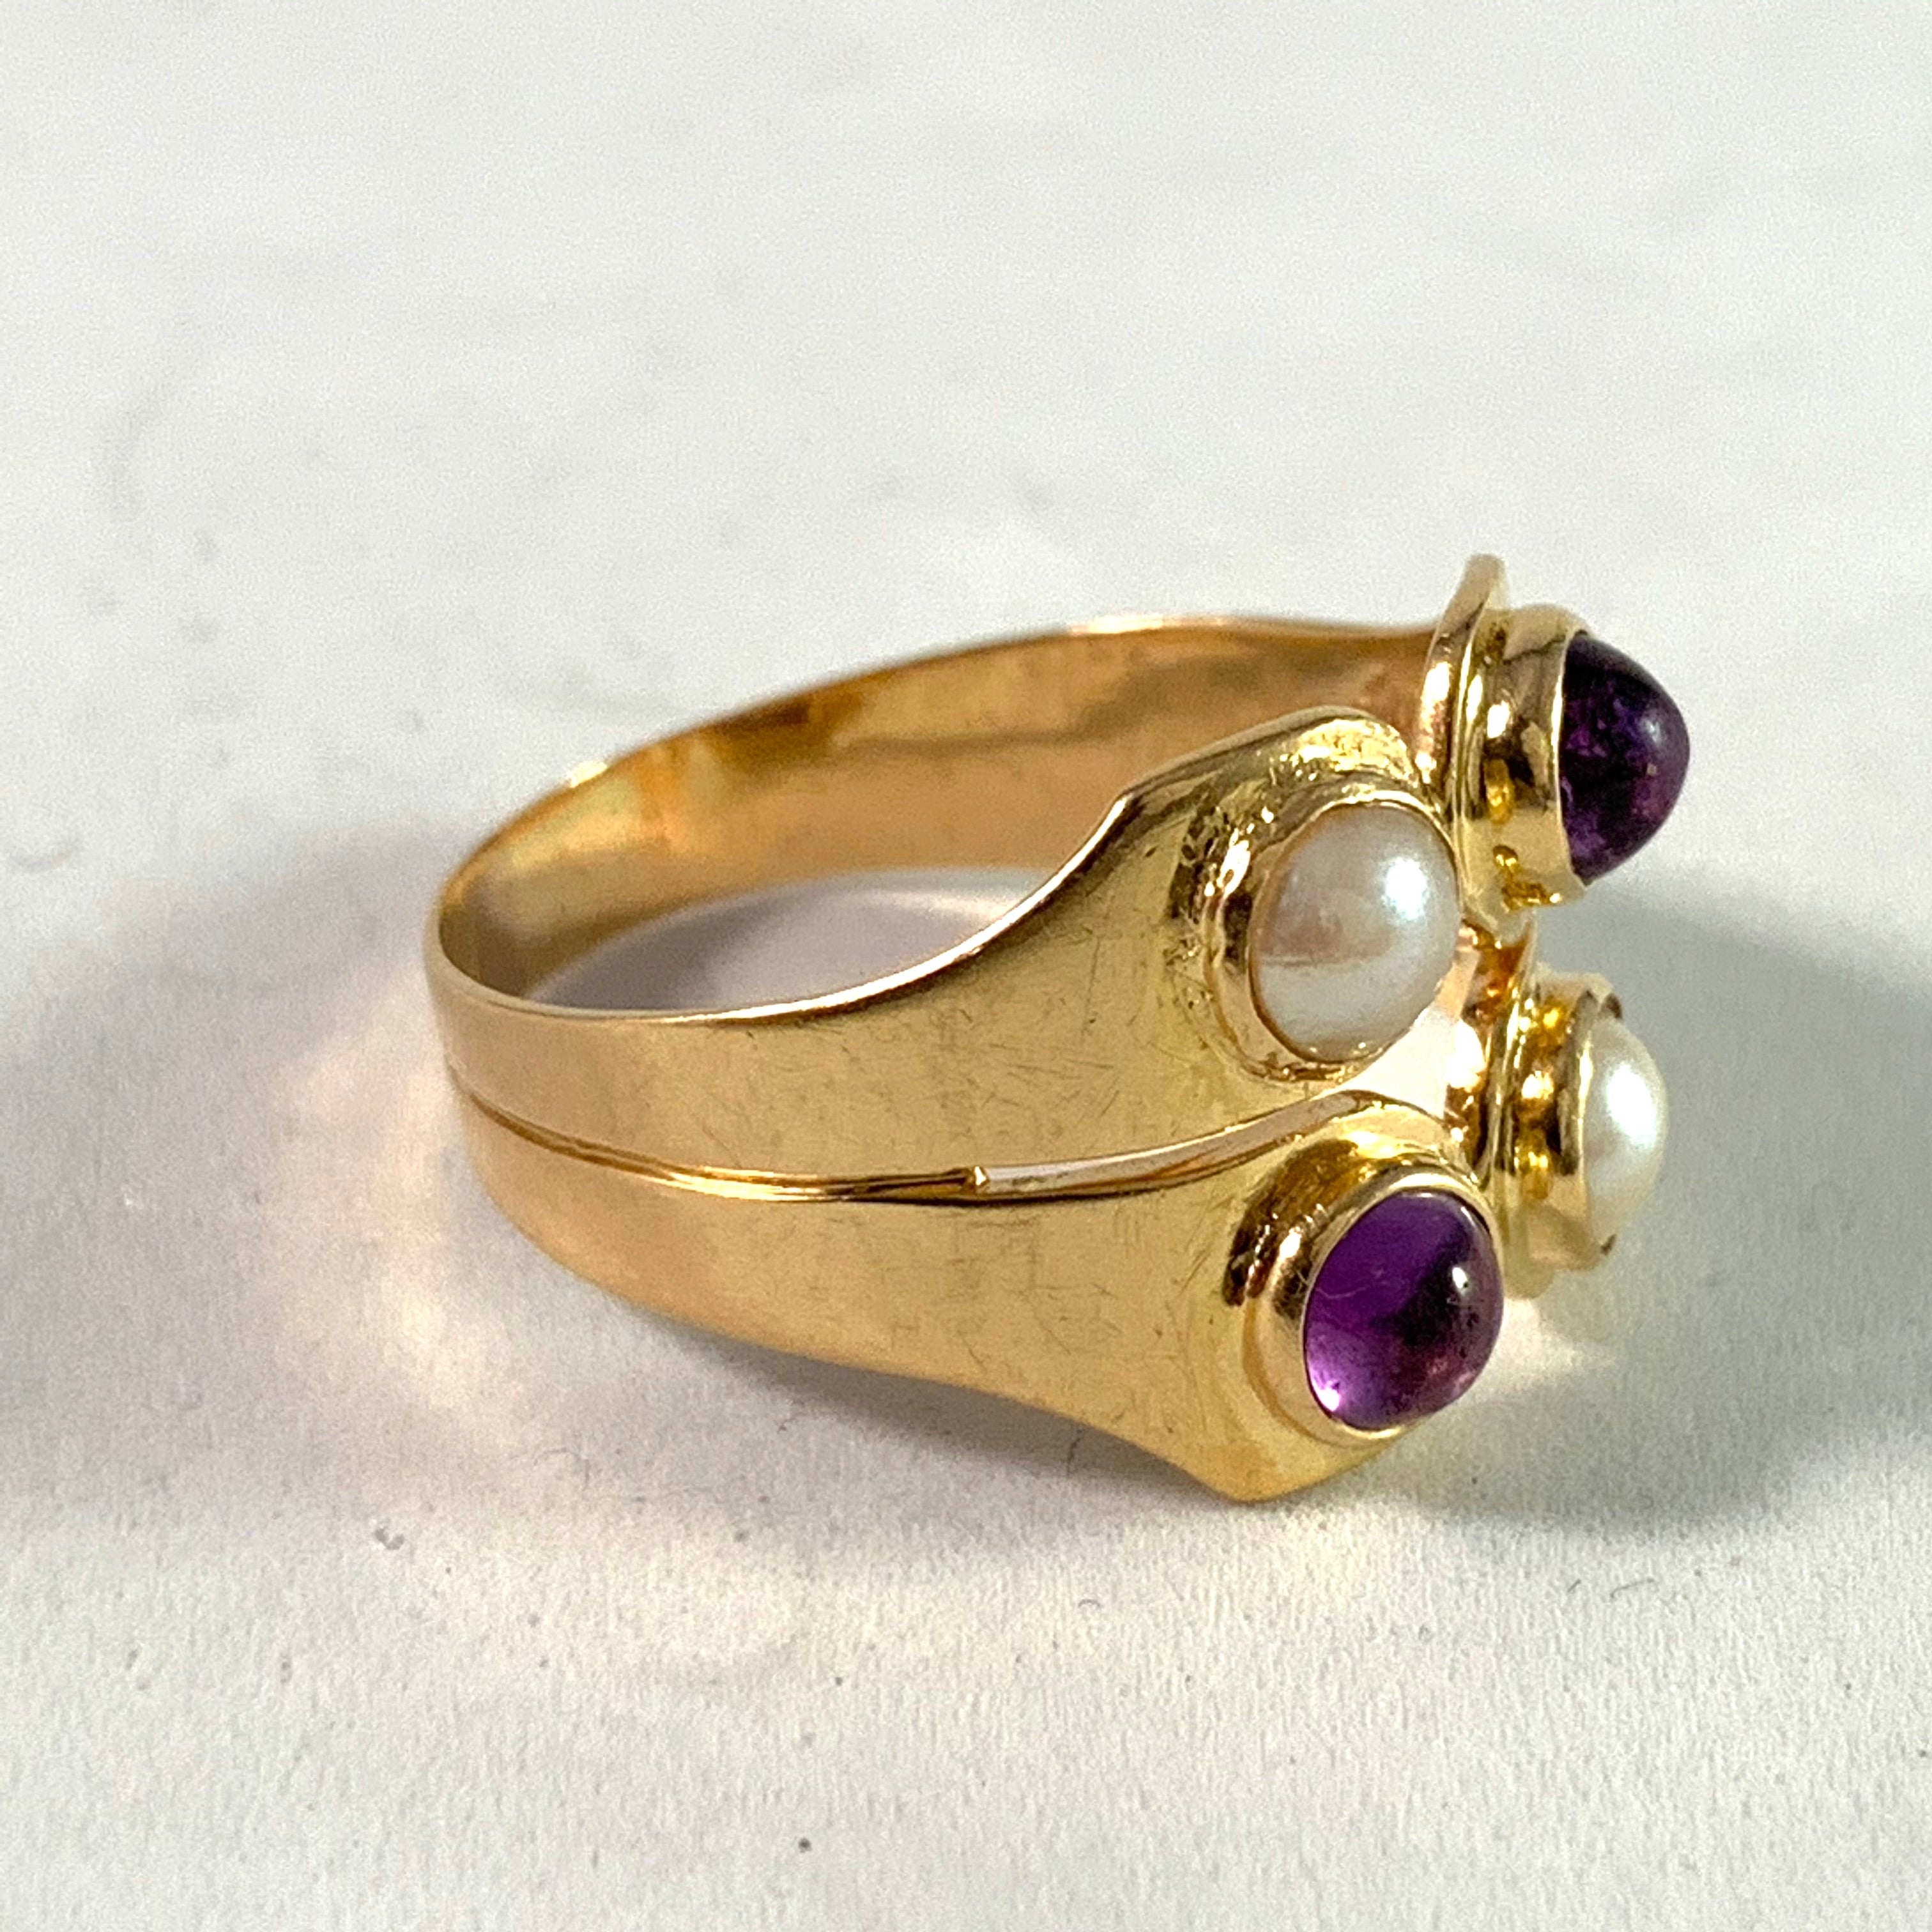 Sigurd Persson for Stigbert Sweden 1952. 18k Gold Pearl Amethyst Ring.